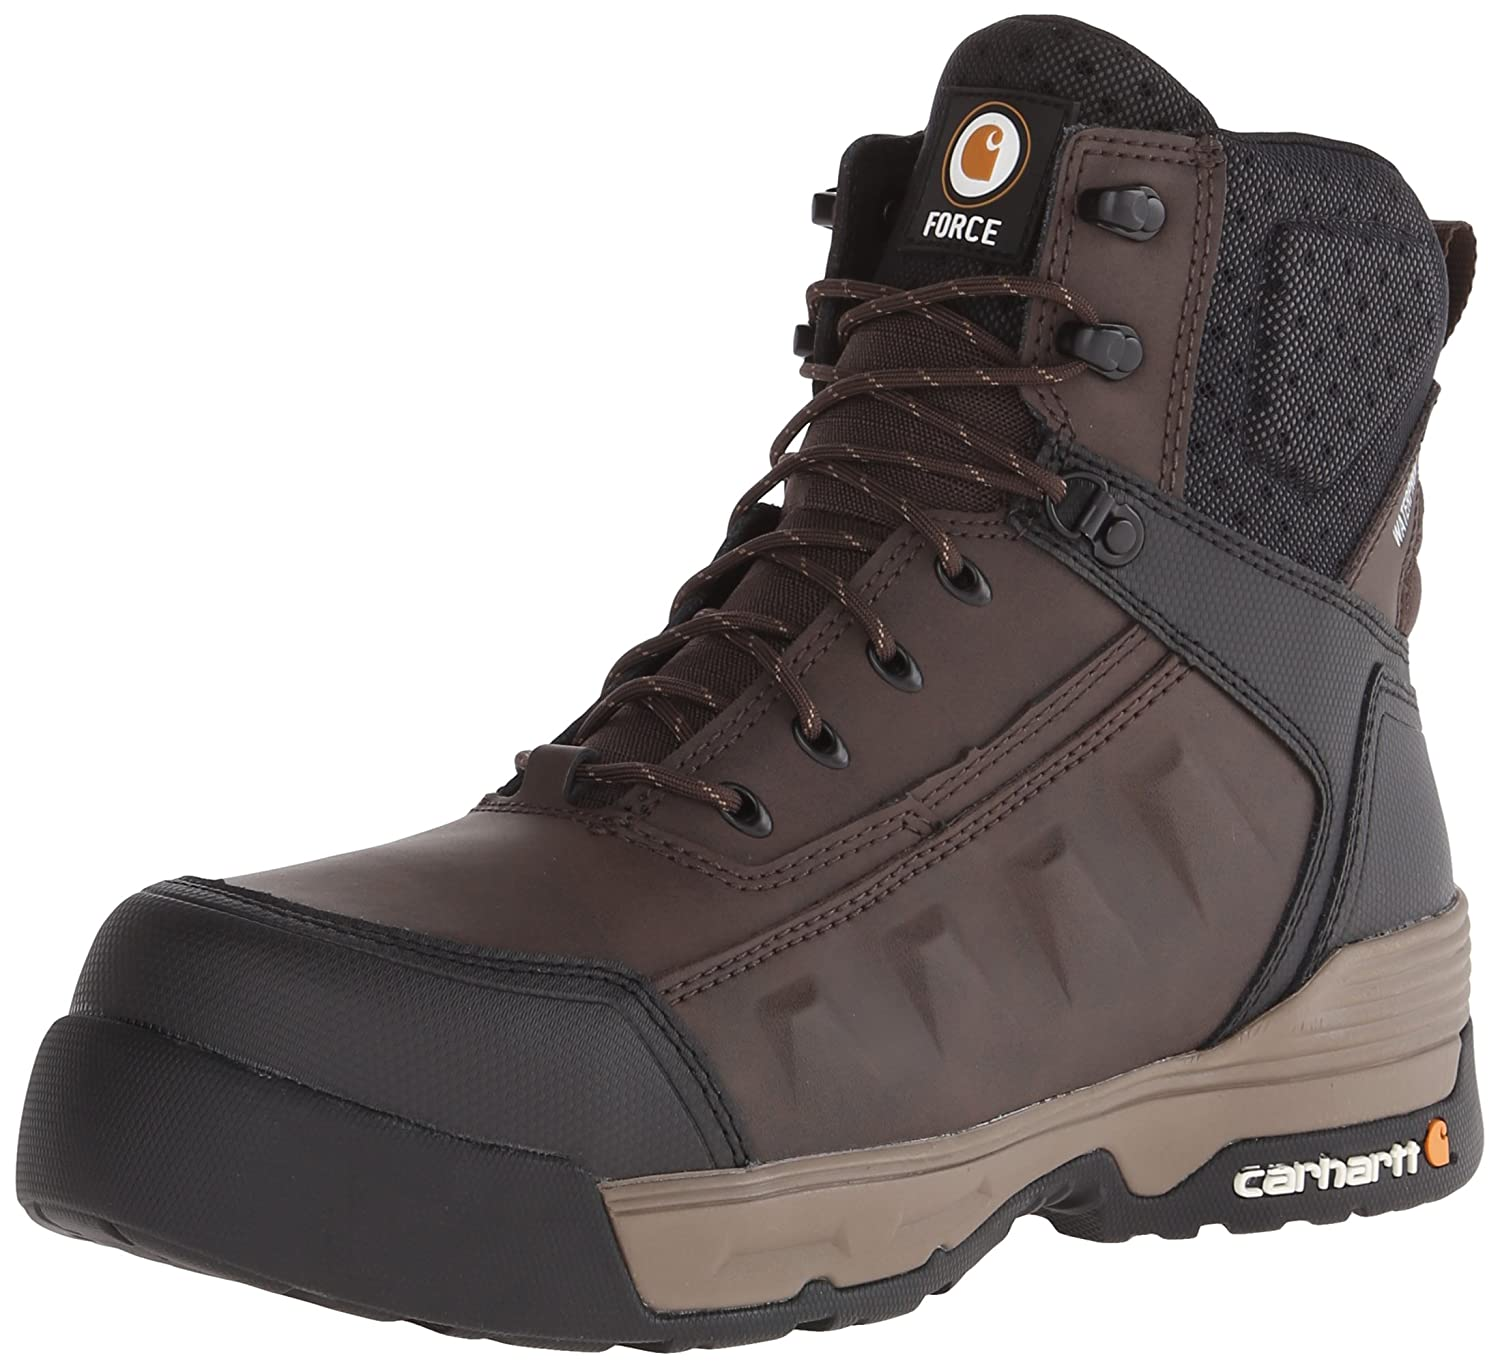 Carhartt メンズ Brown Coated Leather 8 D(M) US 8 D(M) USBrown Coated Leather B00NTN0N98